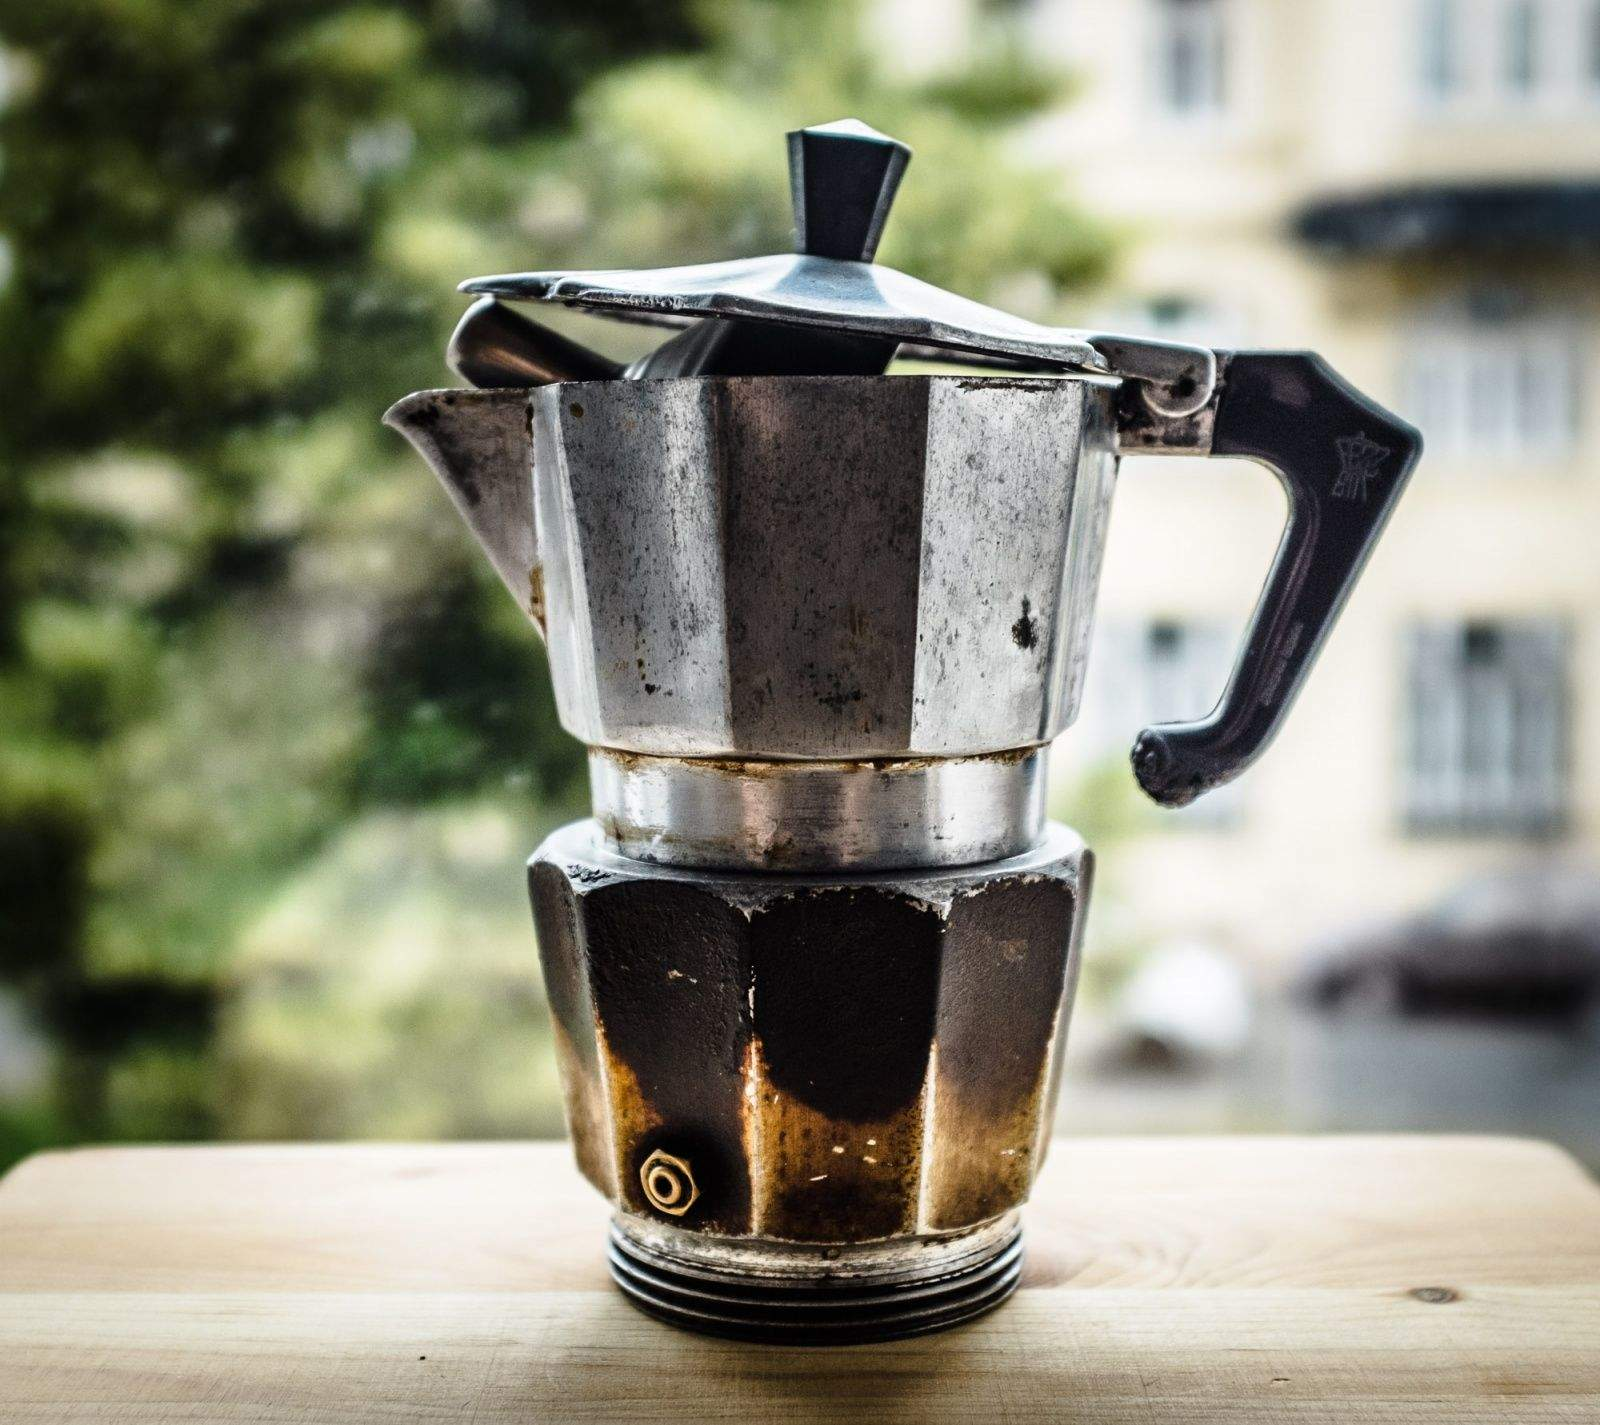 Old School Spanish Coffee Maker : This 80-year-old coffee pot still makes an amazing cup of espresso Cult of Mac